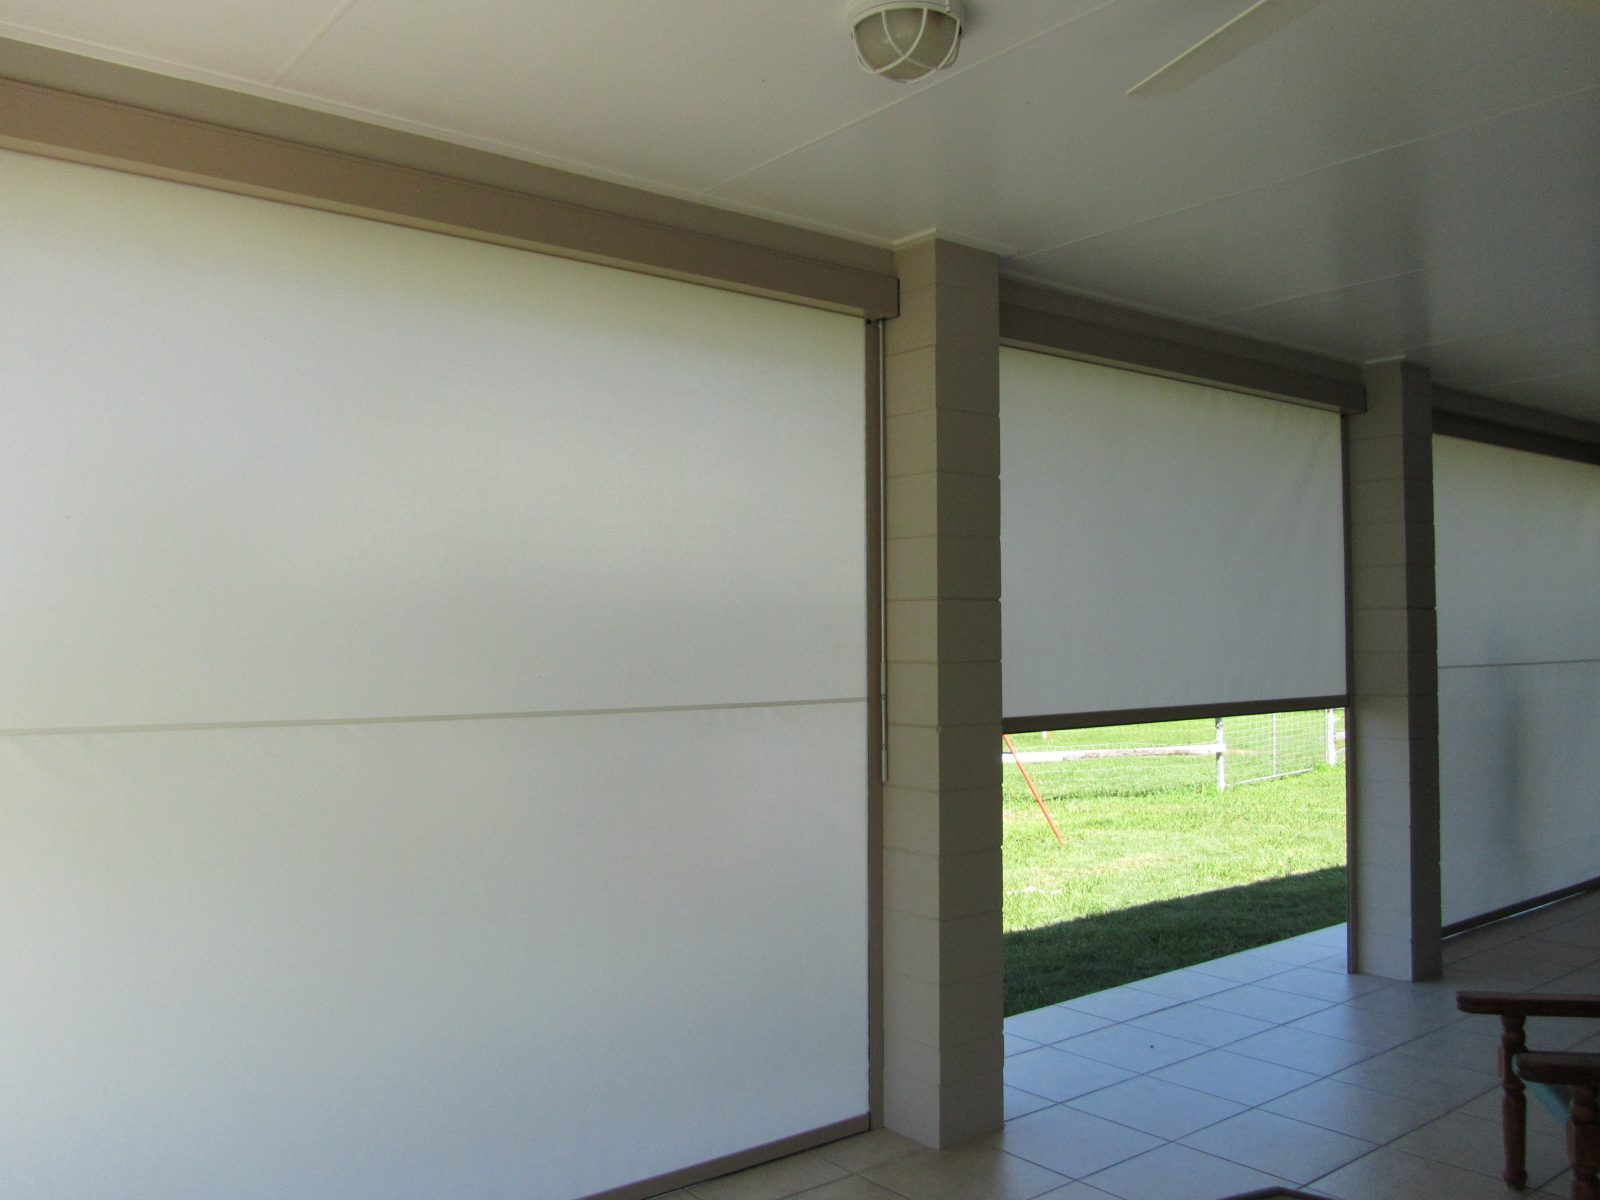 click to hall the ambient install on veranda melbourne a photos porch blinds for outdoor enlarge thumbnails designs patio below verandah